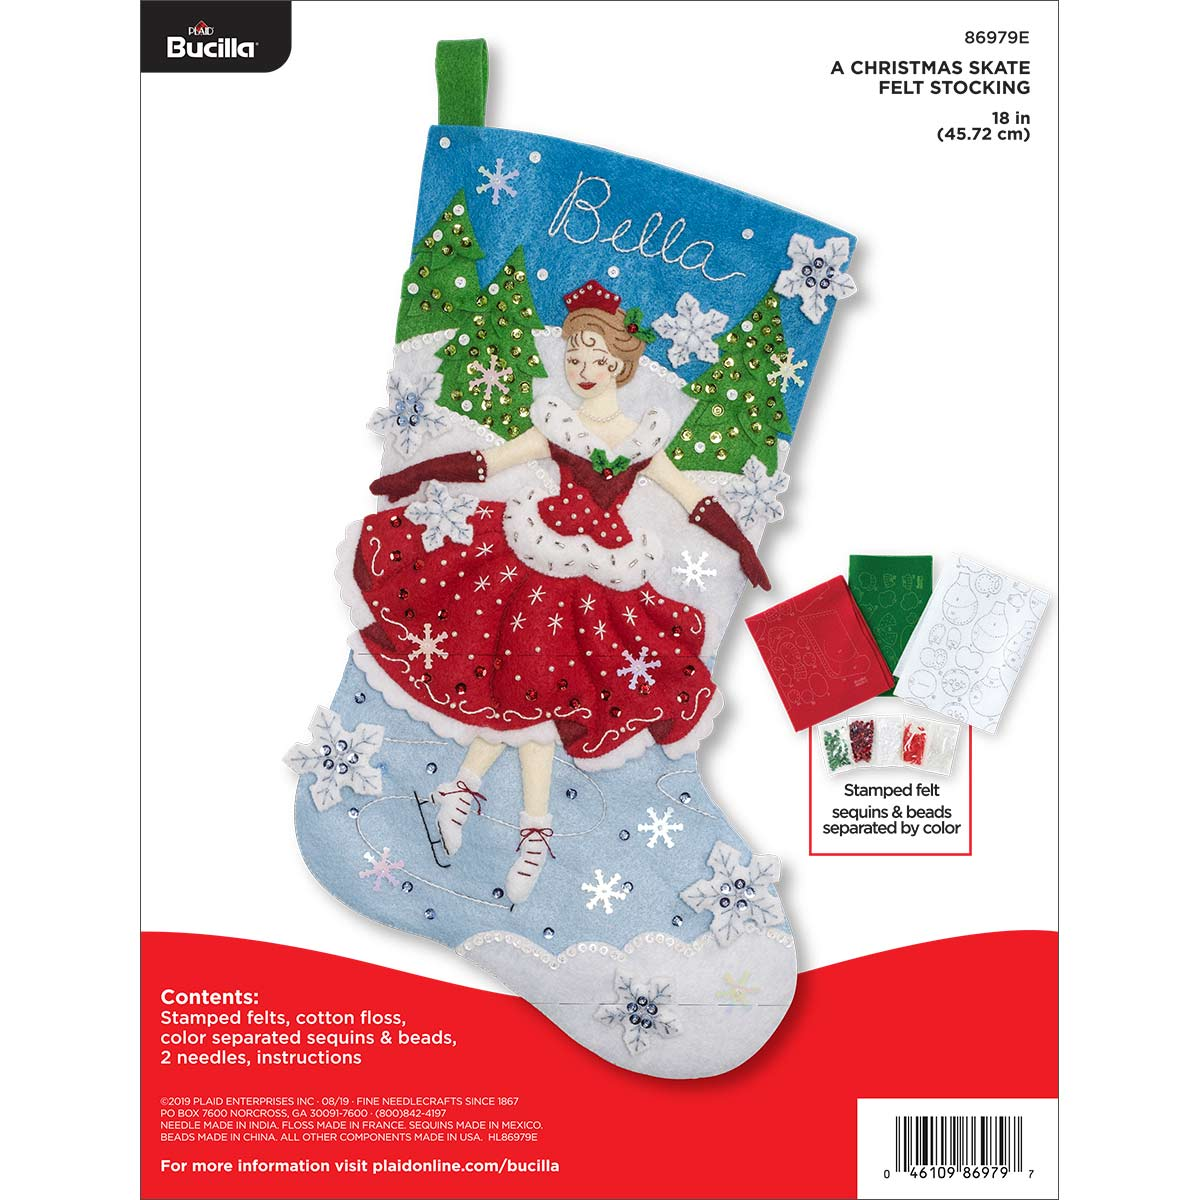 Bucilla ® Seasonal - Felt - Stocking Kits - A Christmas Skate - 86979E